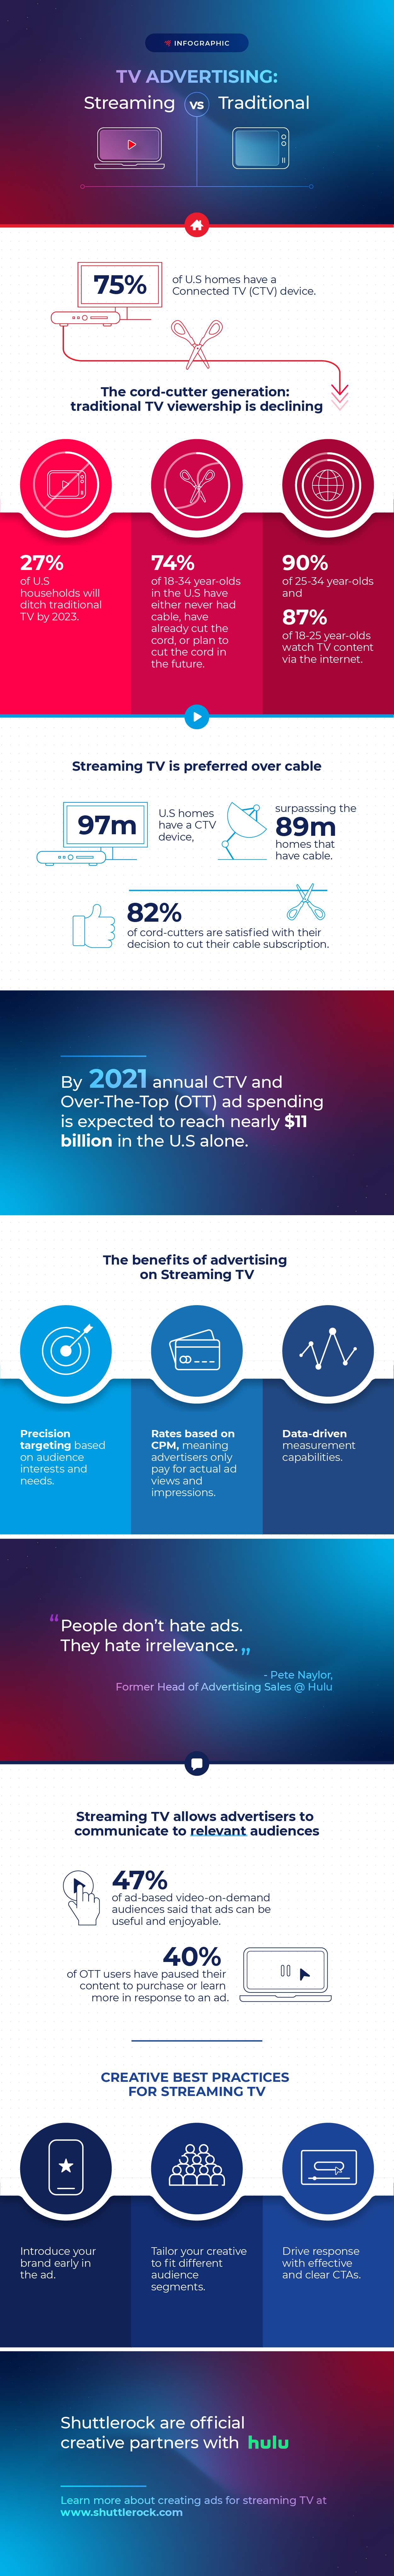 0914_tv-advertising_infographic_R3